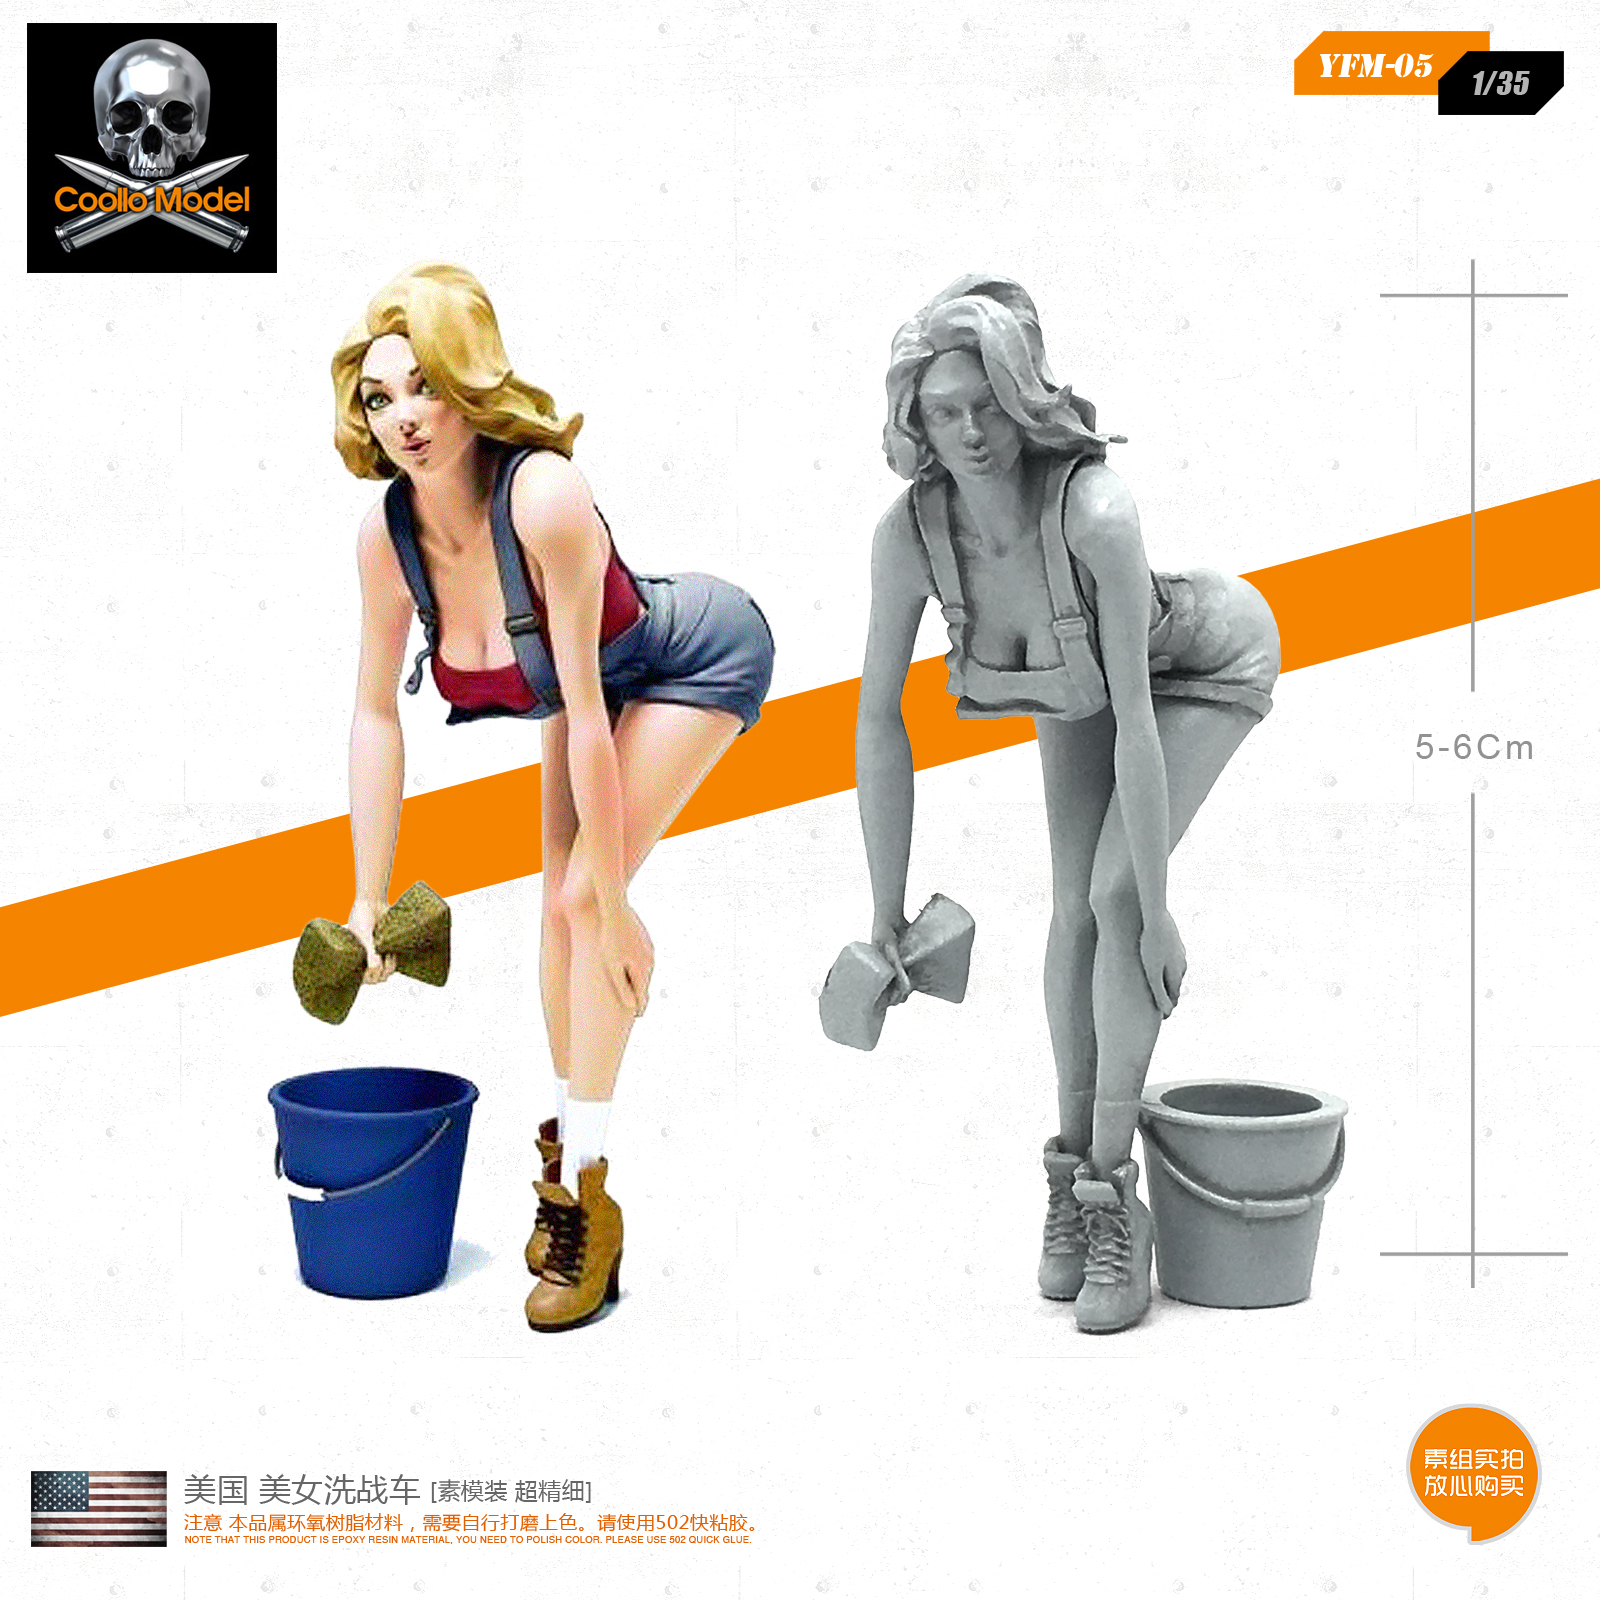 1/35 Resin Figure Kits  American Beauty Washing Vehicle Resin Soldier Colorless And Self-assembled YFM-05